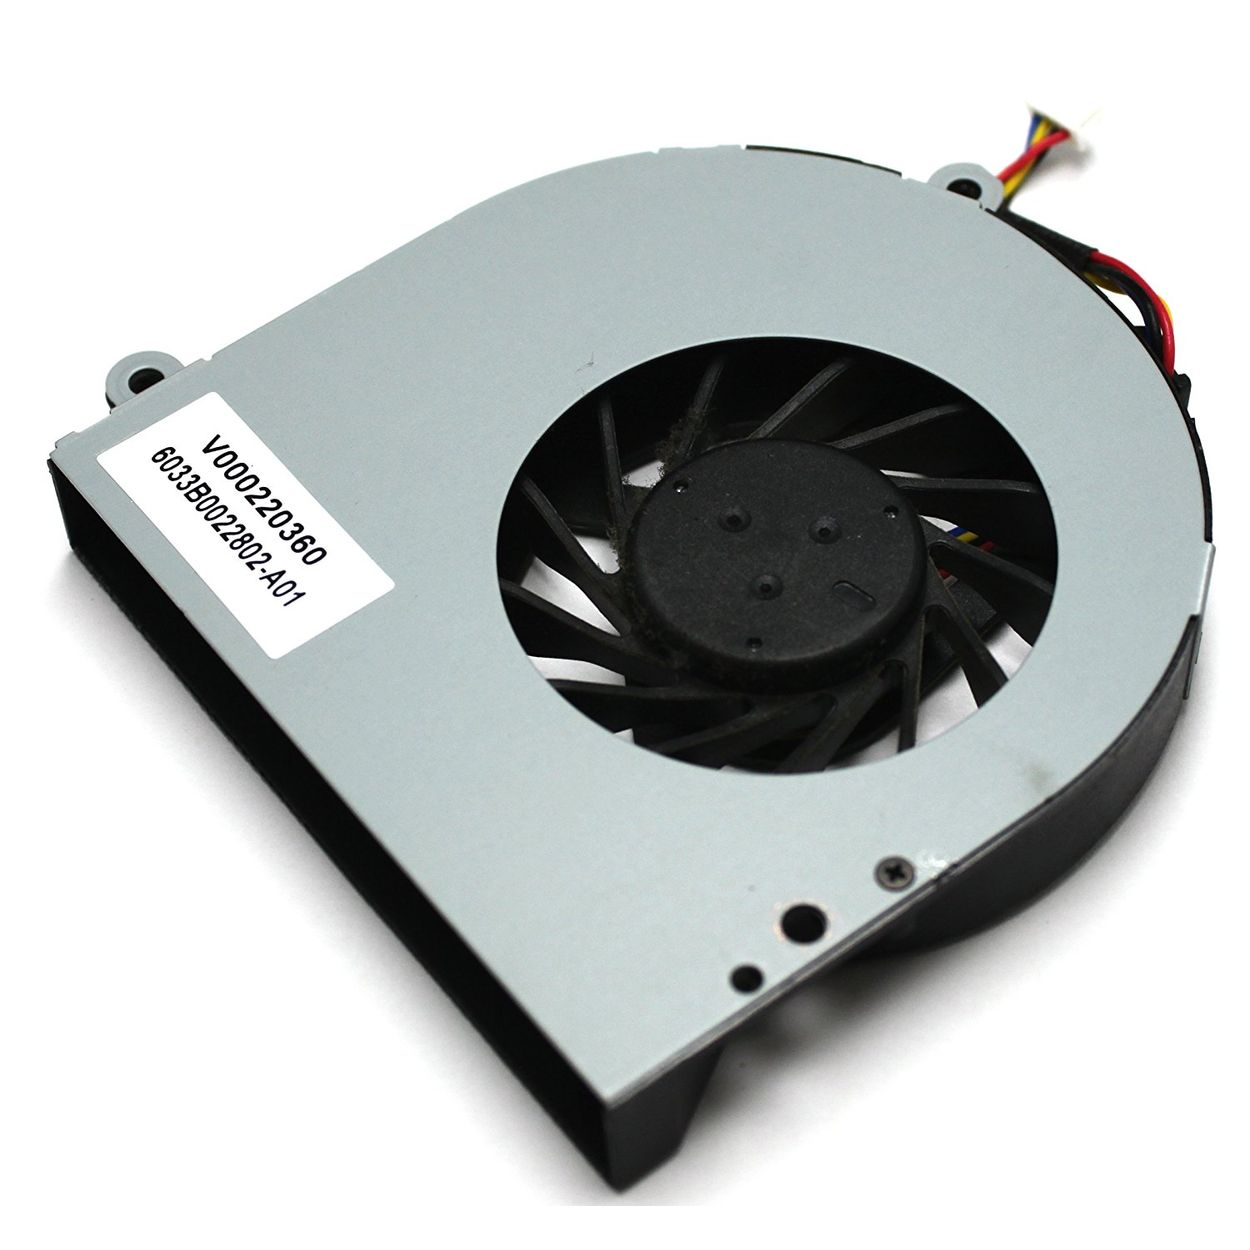 New Laptop CPU Cooling Fan For Toshiba Satellite A660 A665 A660D A665D L670 L670D L675 L675D P750 P750D P755 P755D Series